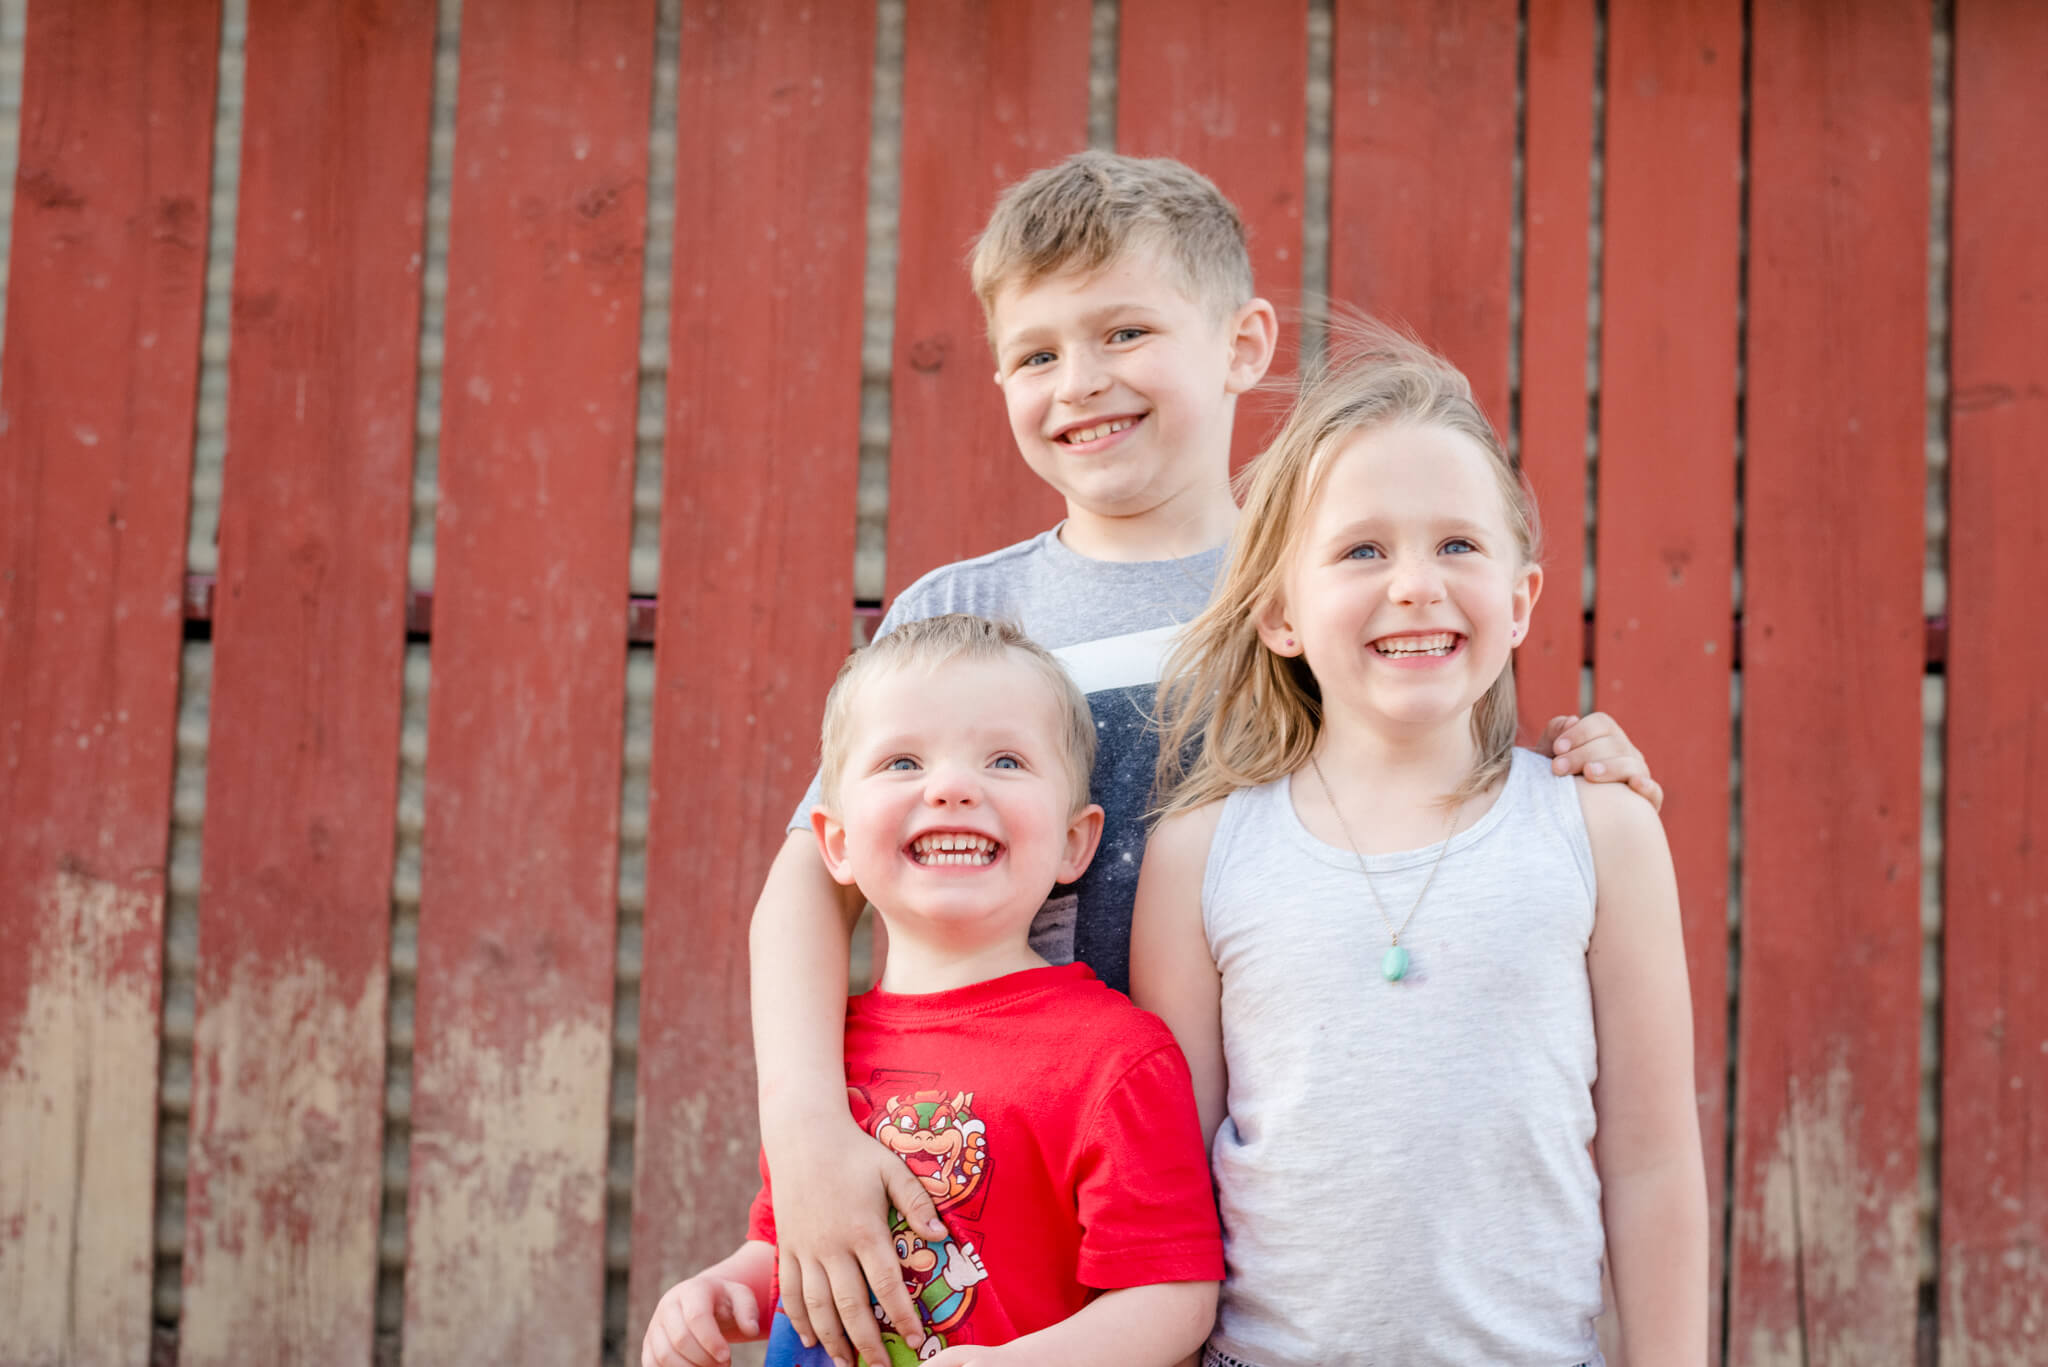 Two boys and a girl standing alley